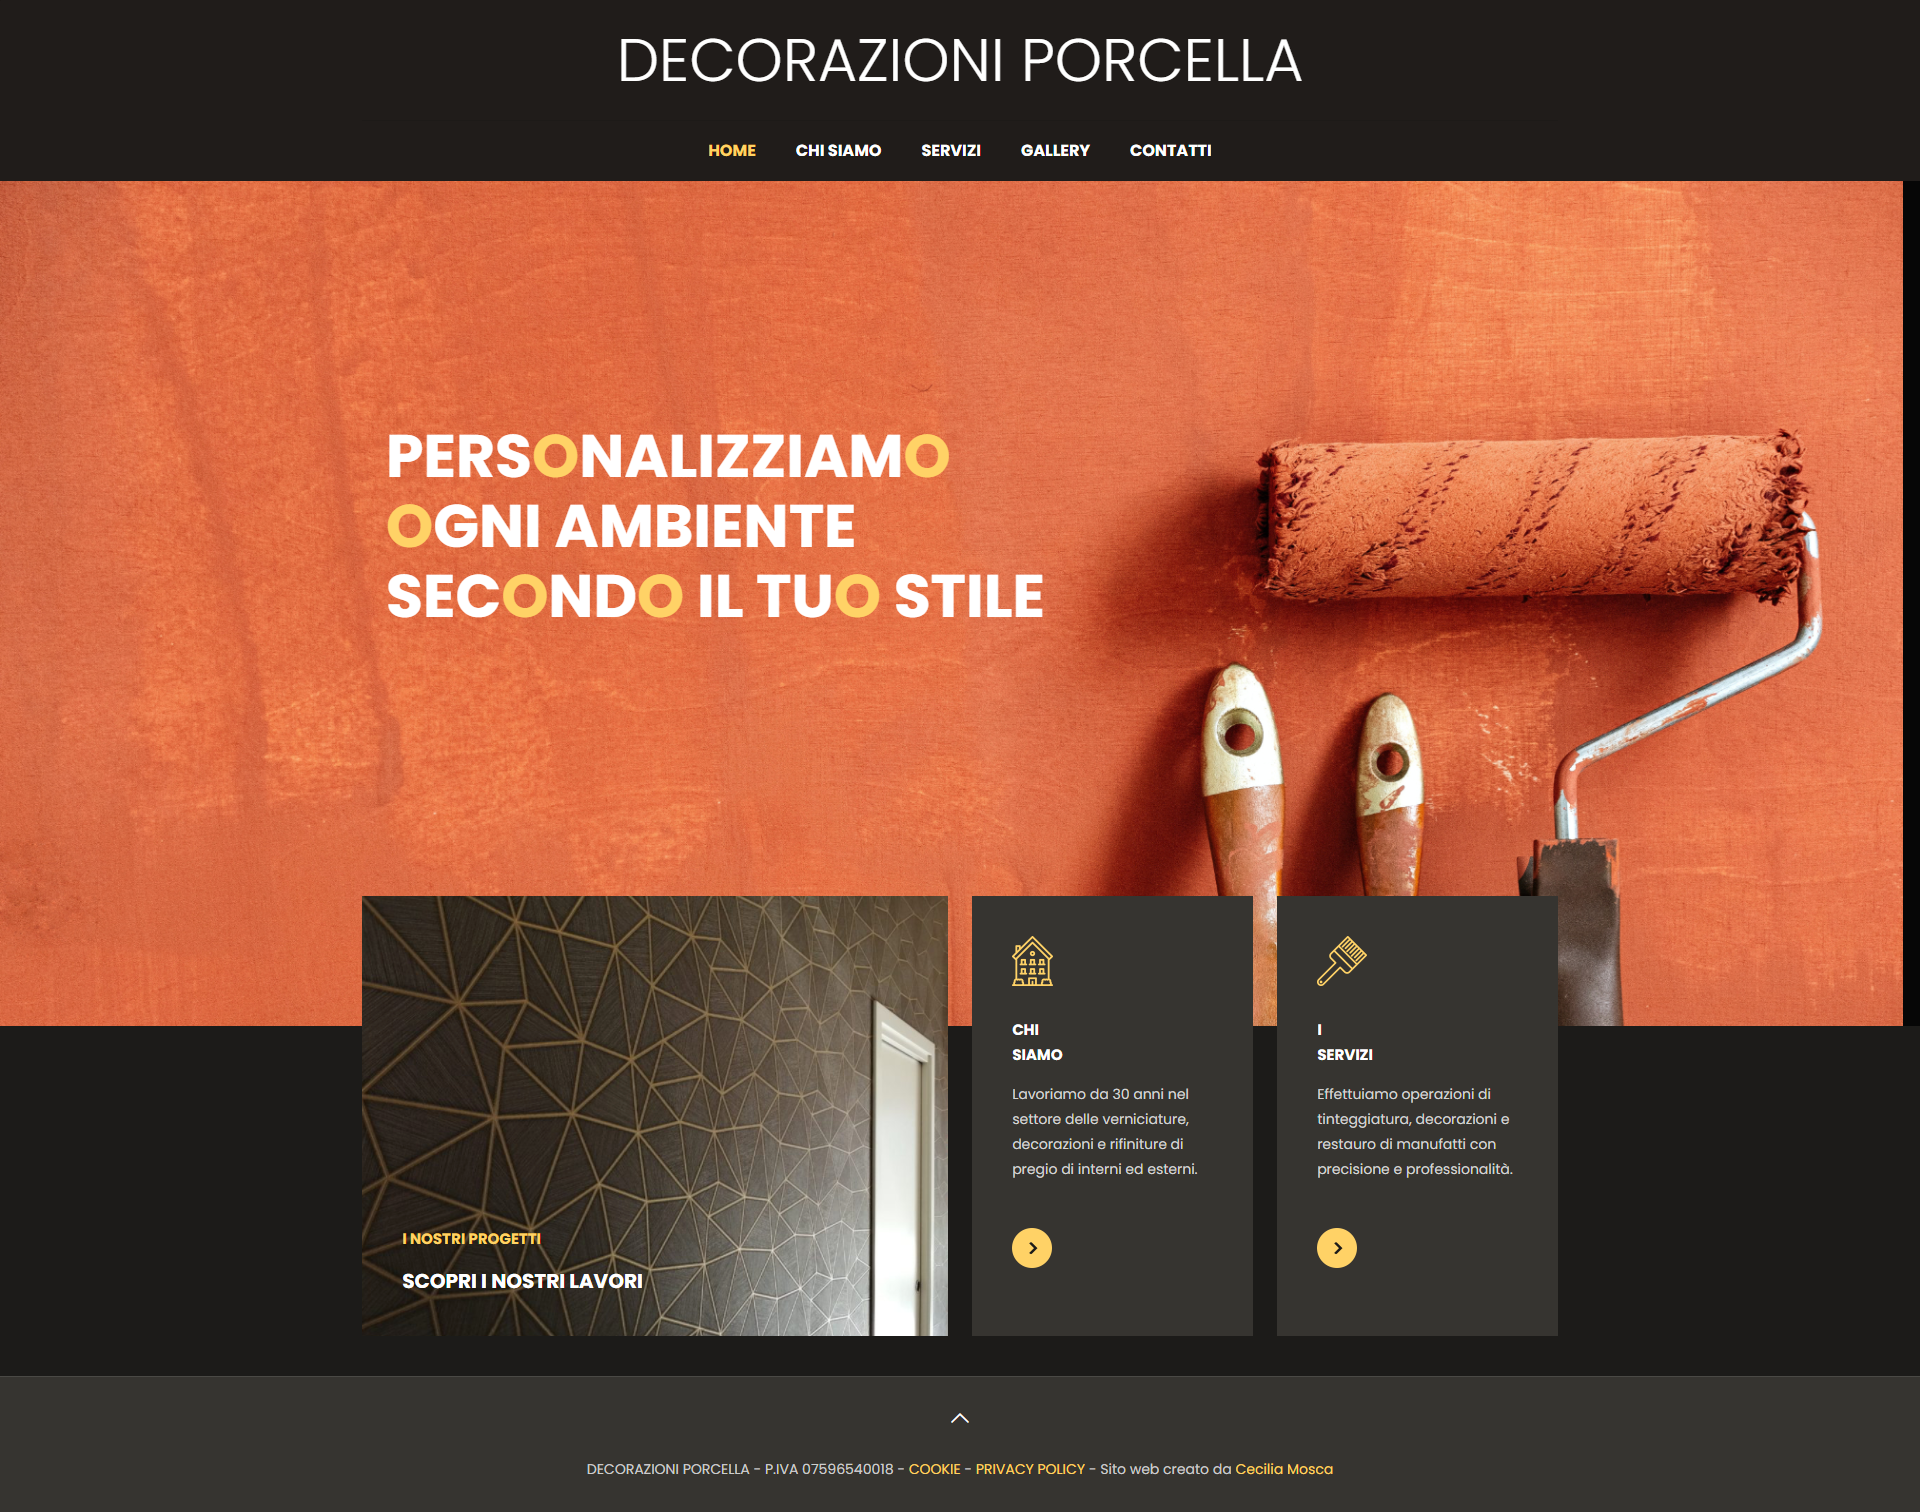 HOME-Decorazioni-Porcella